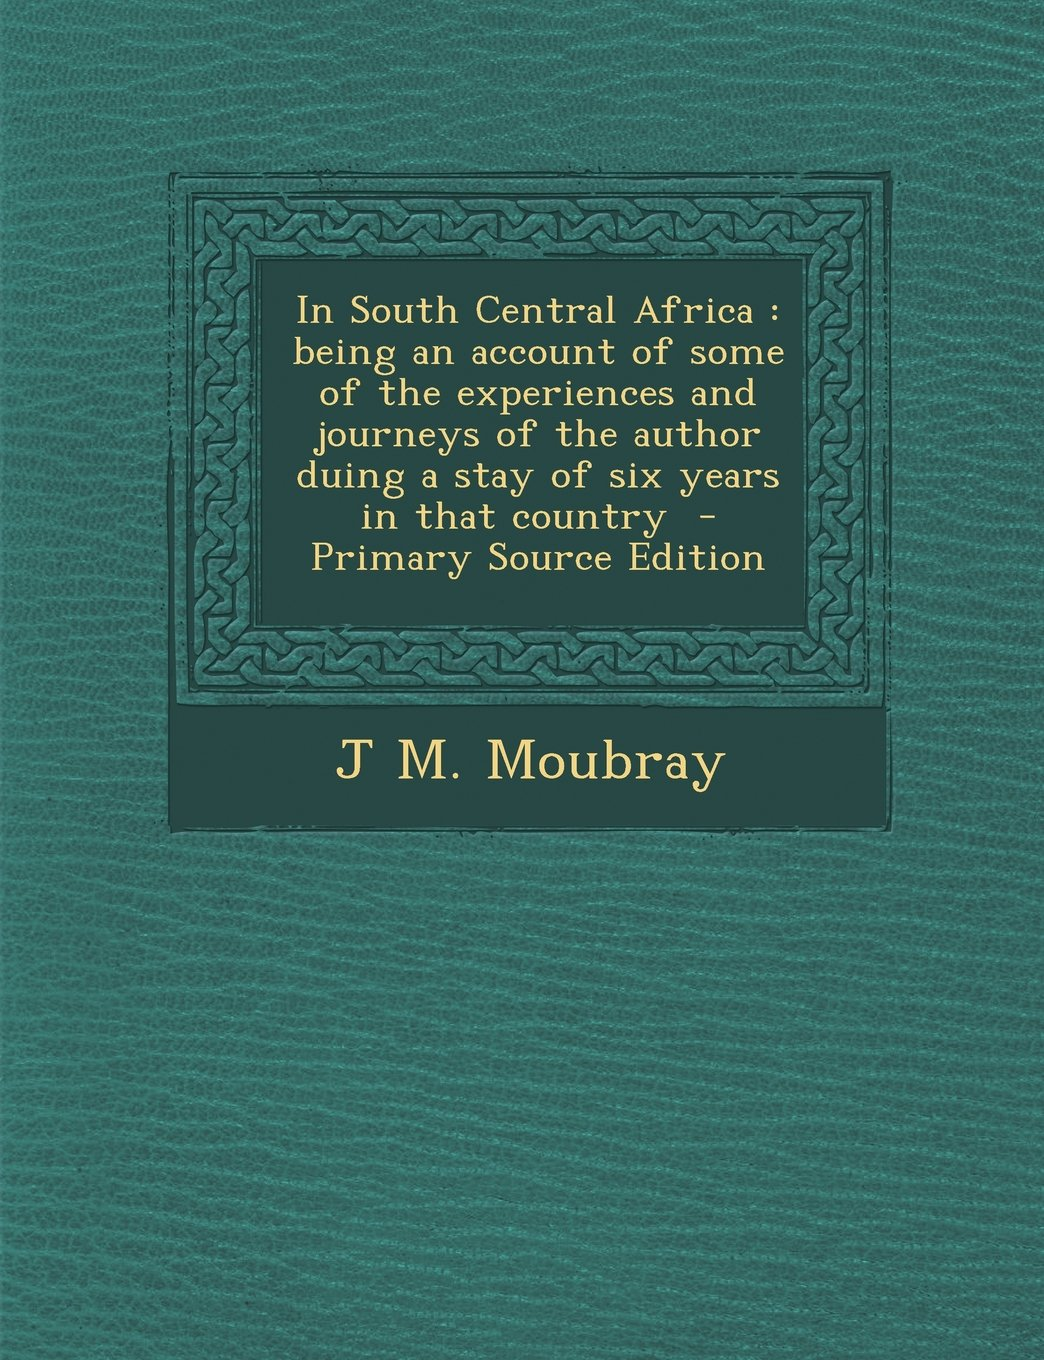 In South Central Africa: being an account of some of the experiences and journeys of the author duing a stay of six years in that country  - Primary Source Edition ebook